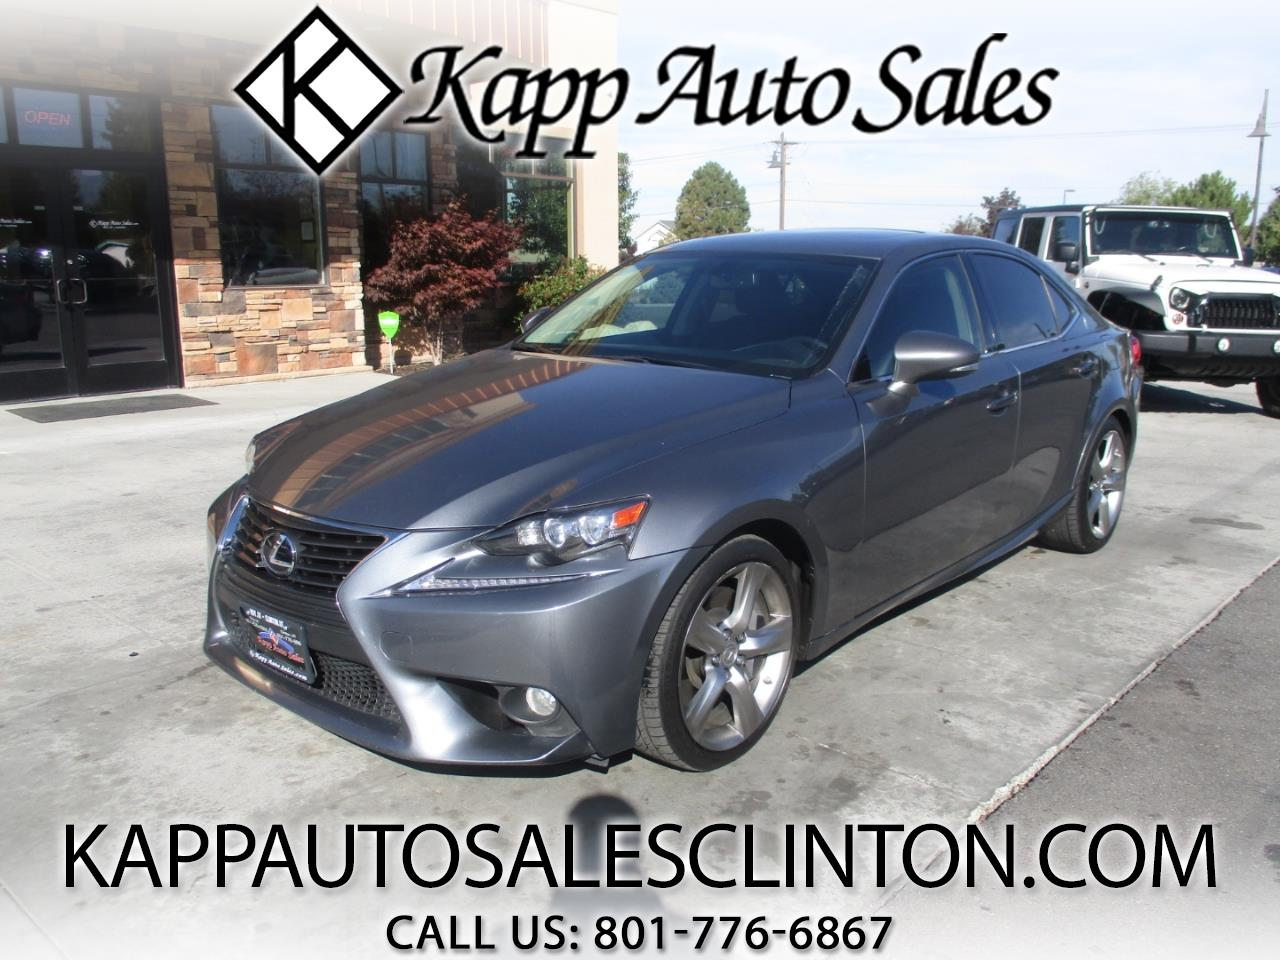 Lexus IS 350 4dr Sdn AWD 2014